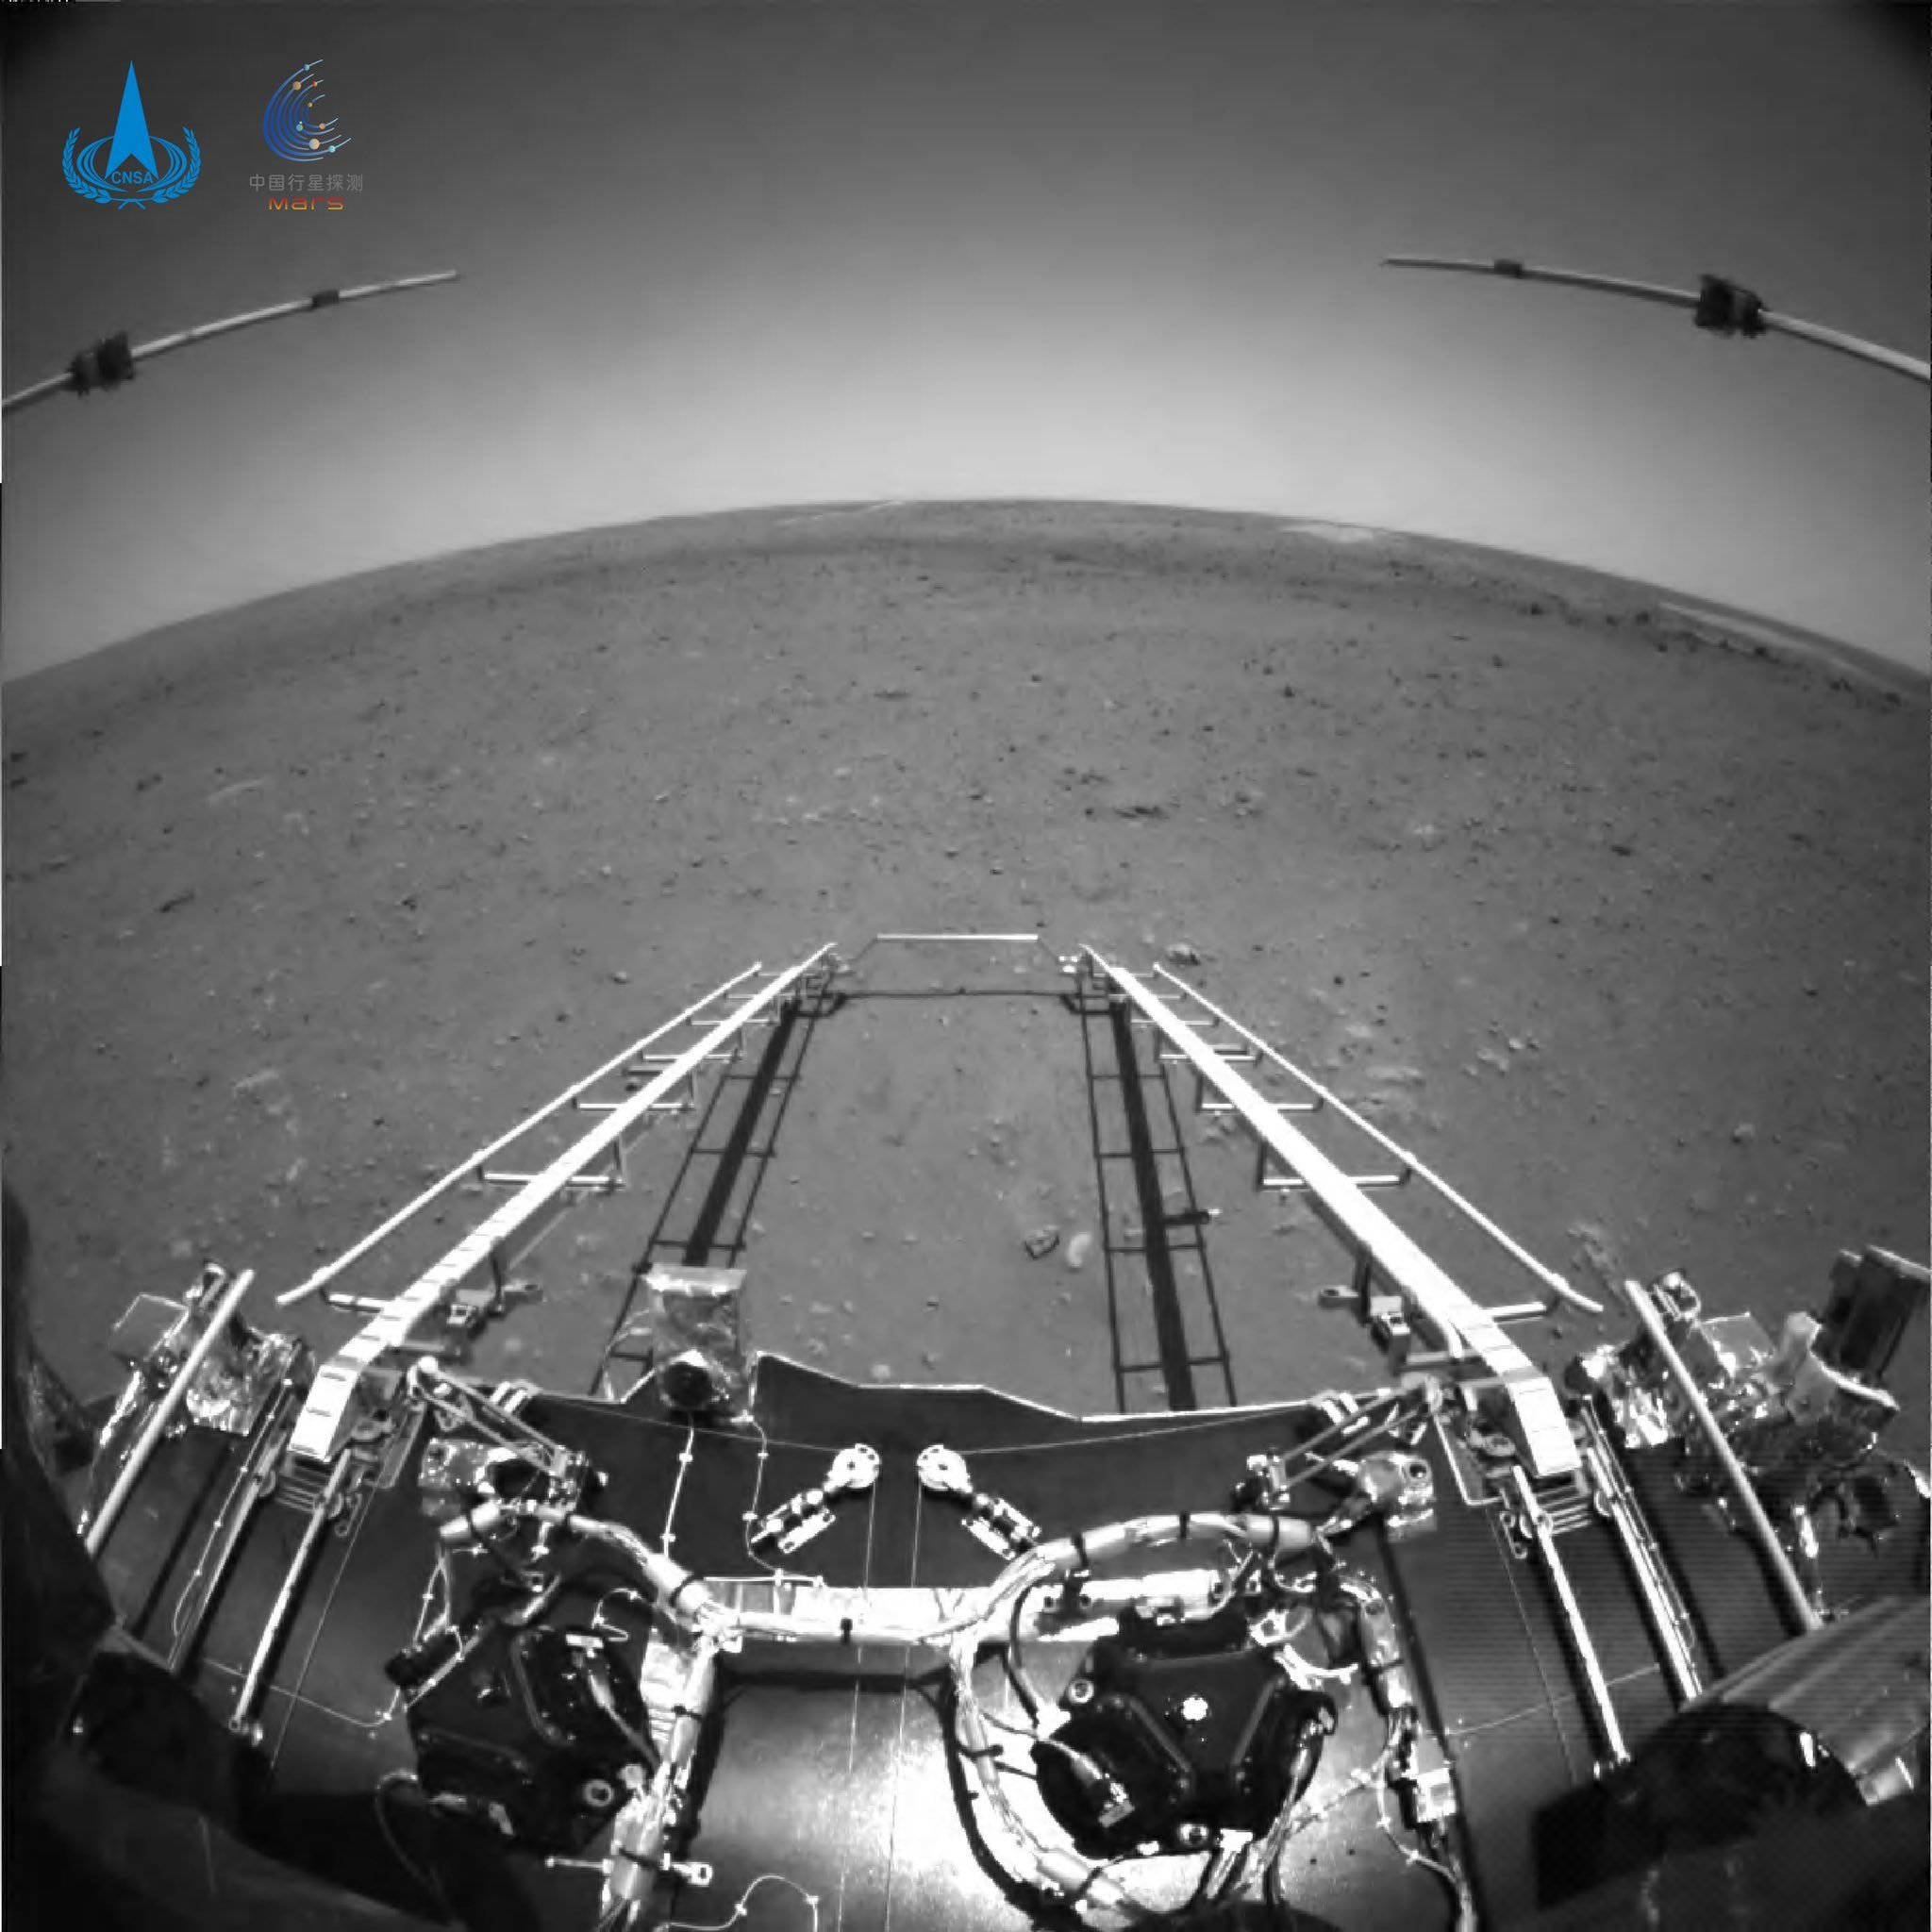 - 162149252060a603289943d - China's space agency releases first images of Mars taken by Zhurong rover